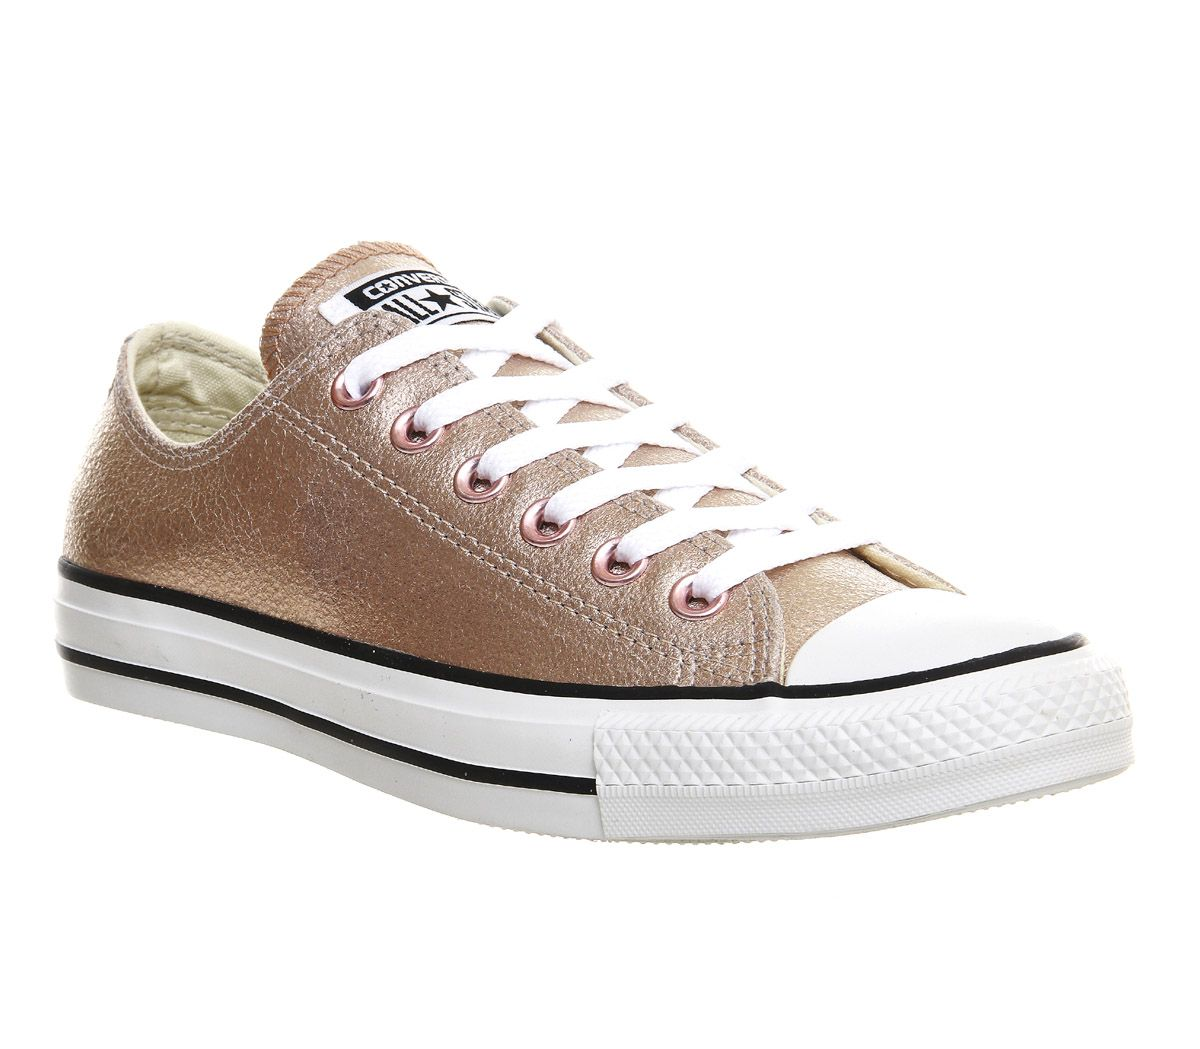 Converse All Star Low Leather Rose Gold Exclusive - Unisex Sports